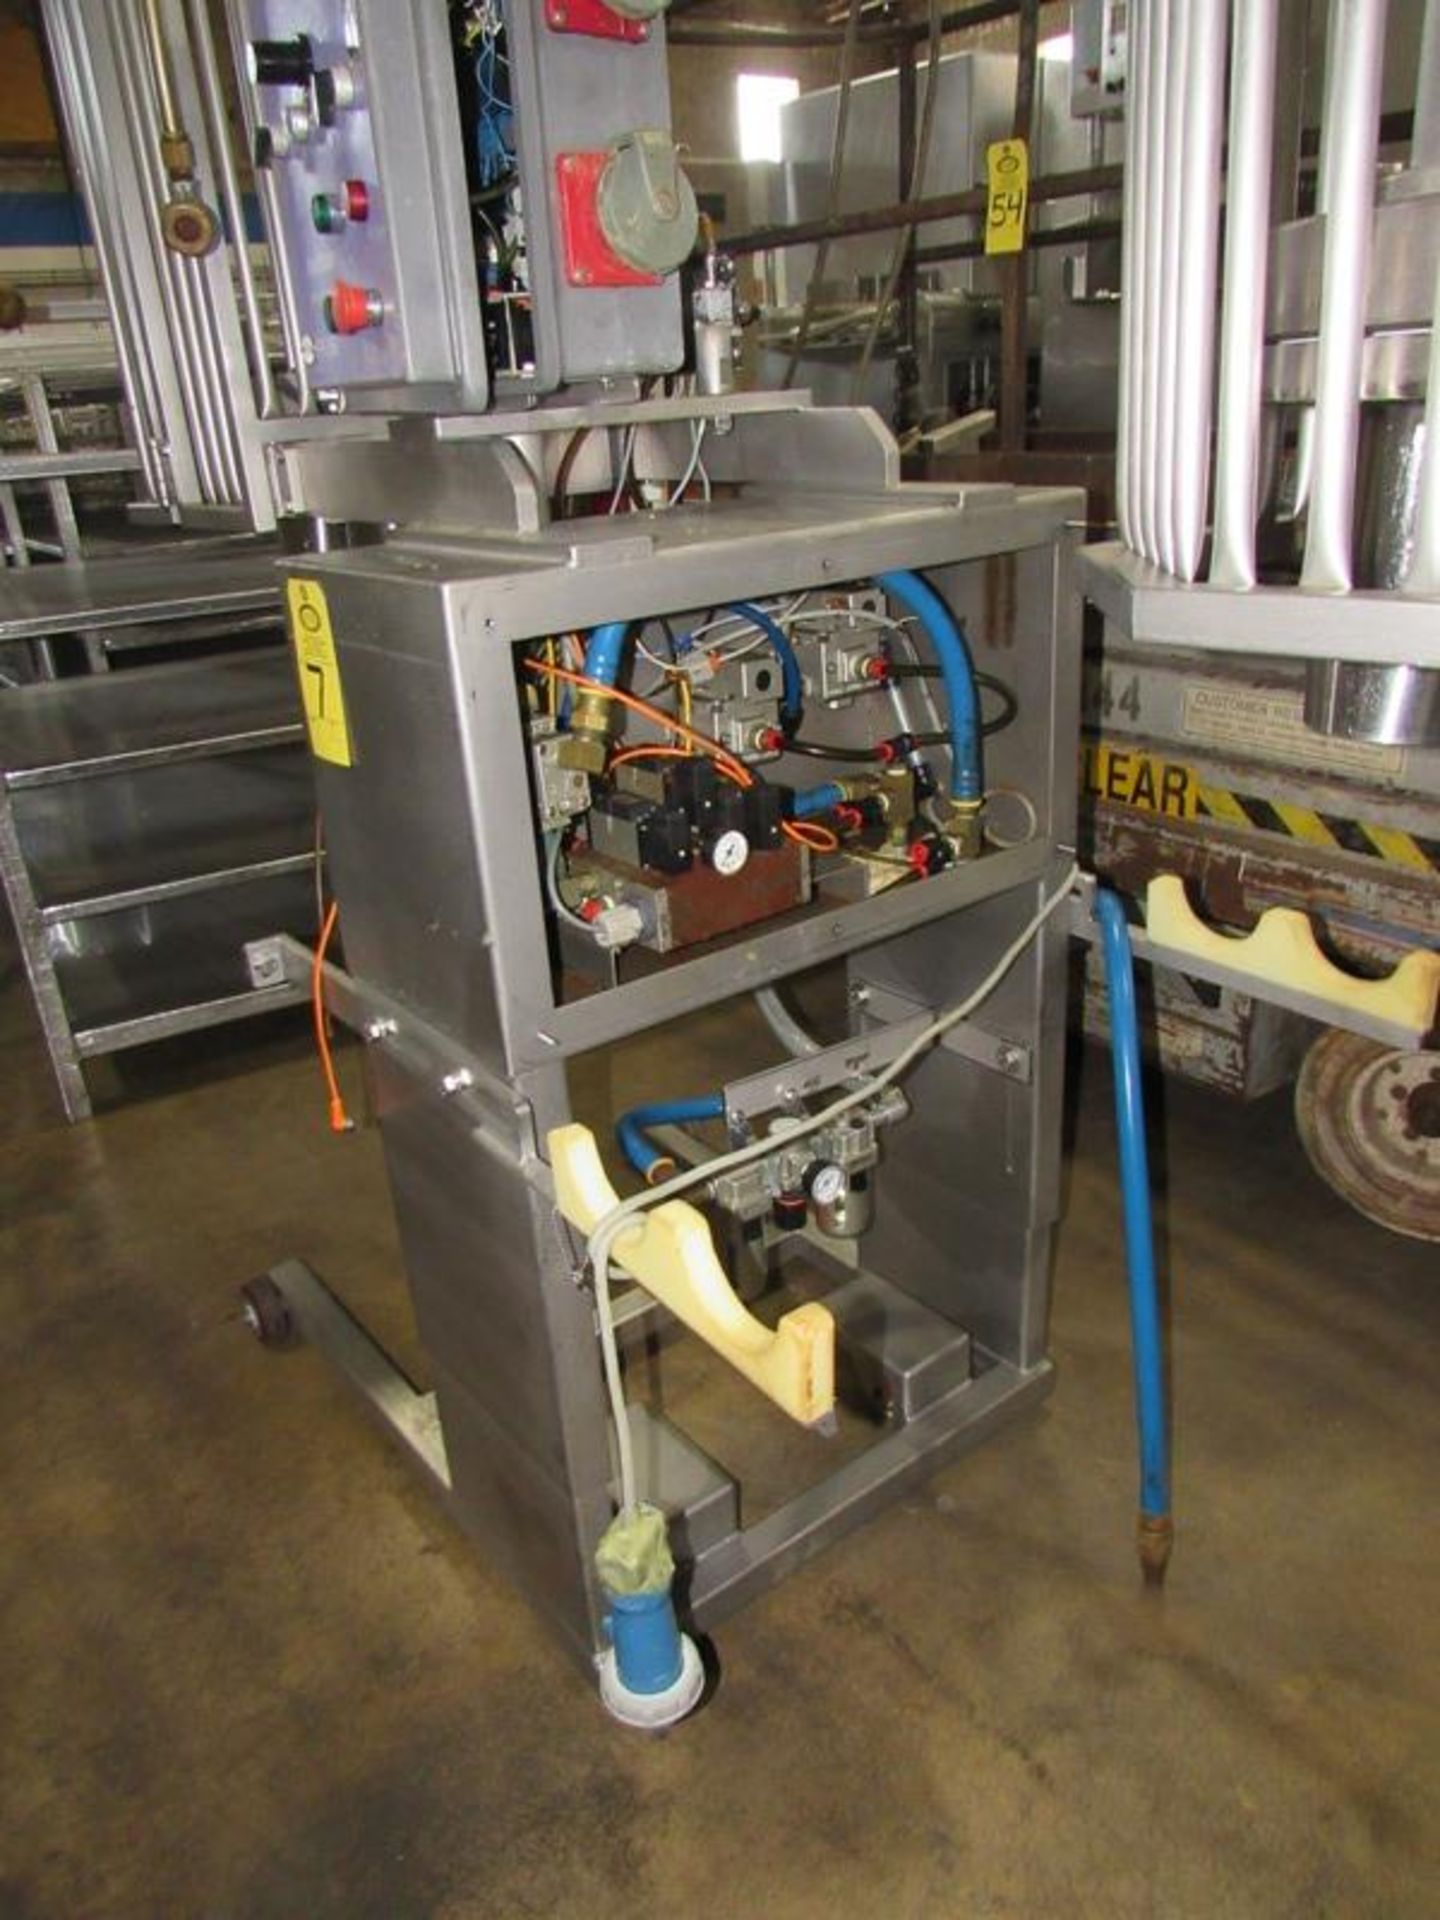 Handtmann Mdl. VPF-35R Portioning Machine (Equipment must be removed by Thursday, June 24th no - Image 2 of 5